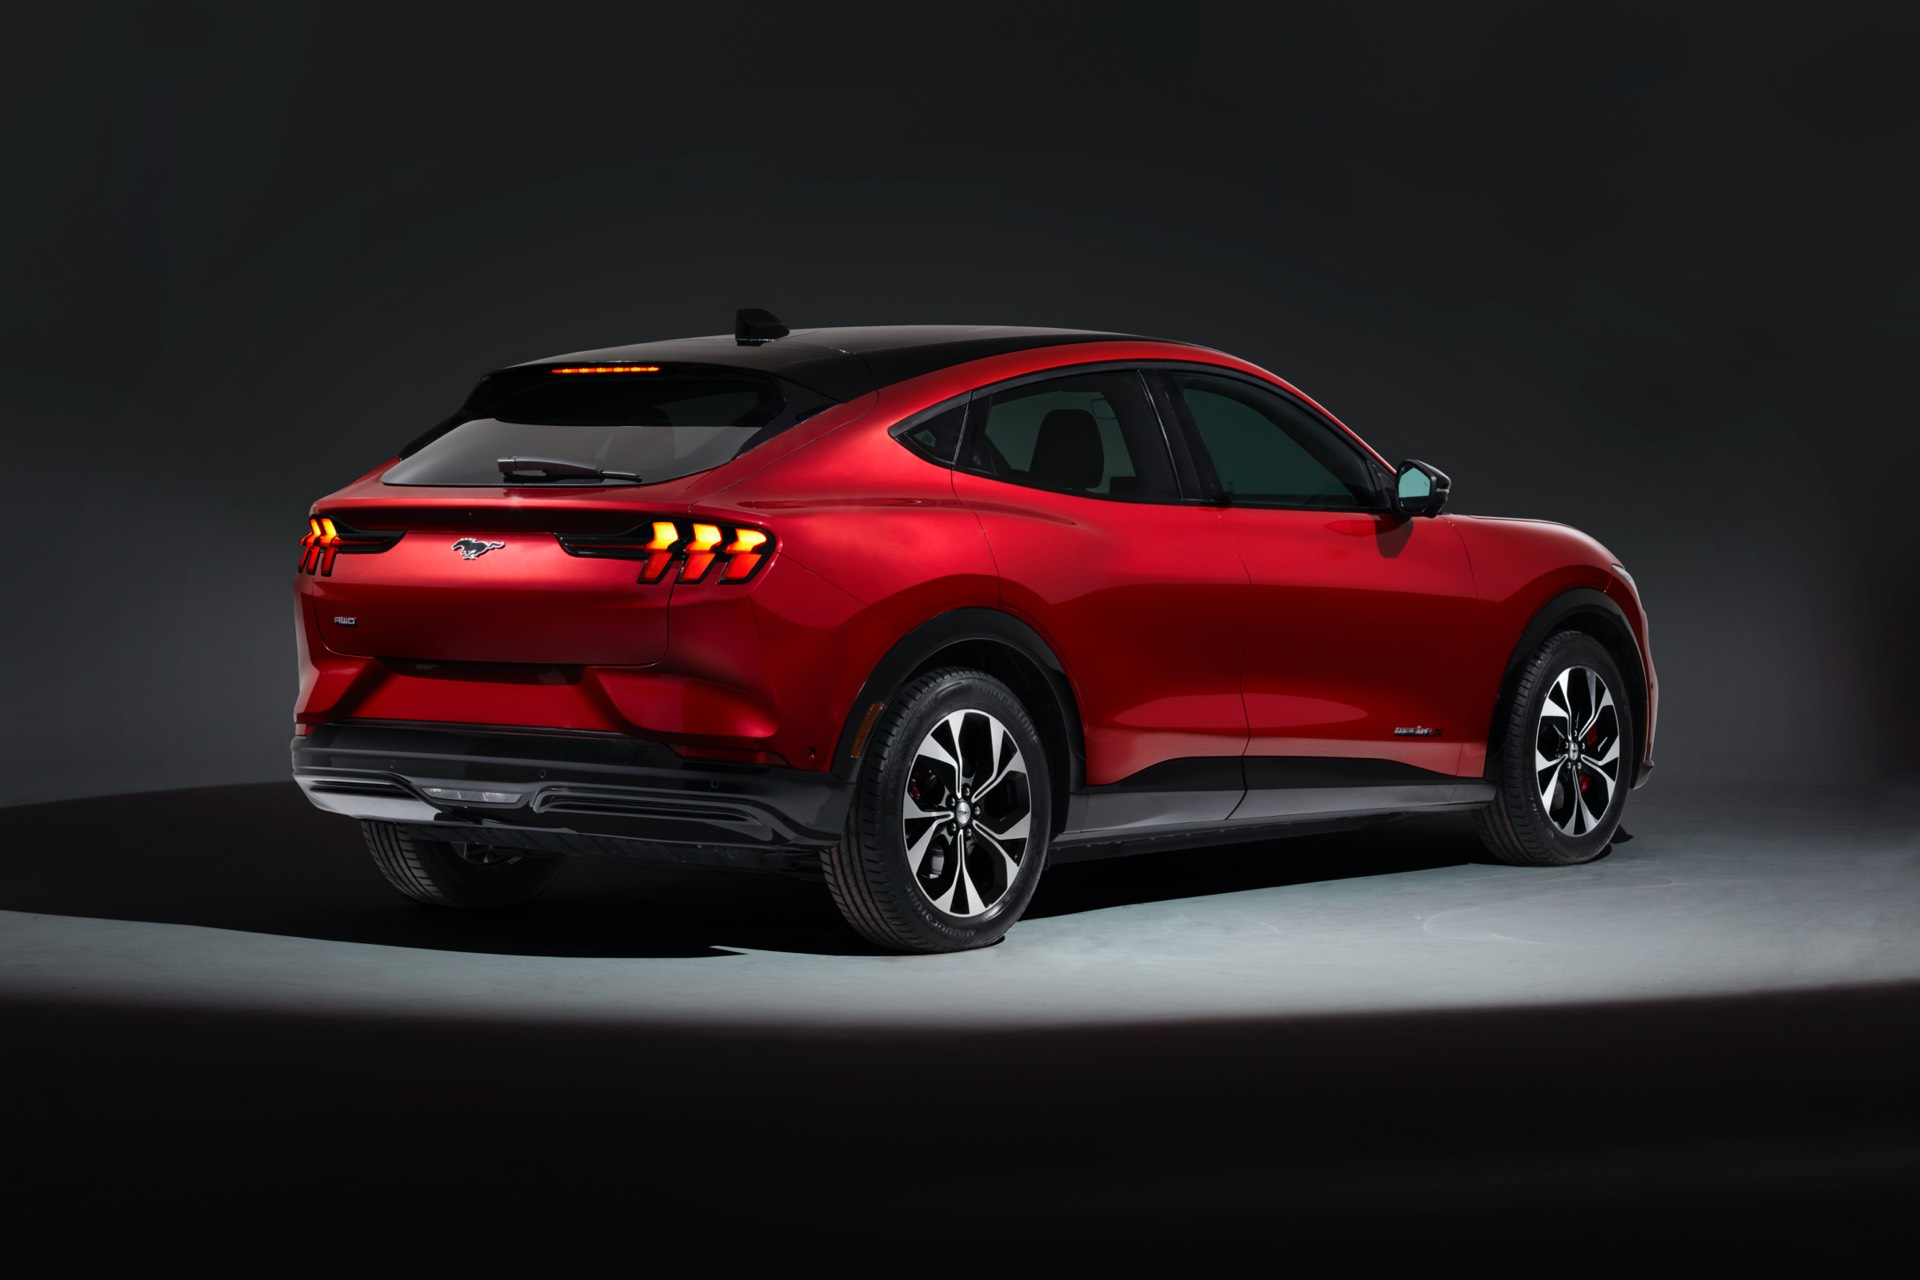 2020 ford mustang mache all electric suv coupe revealed